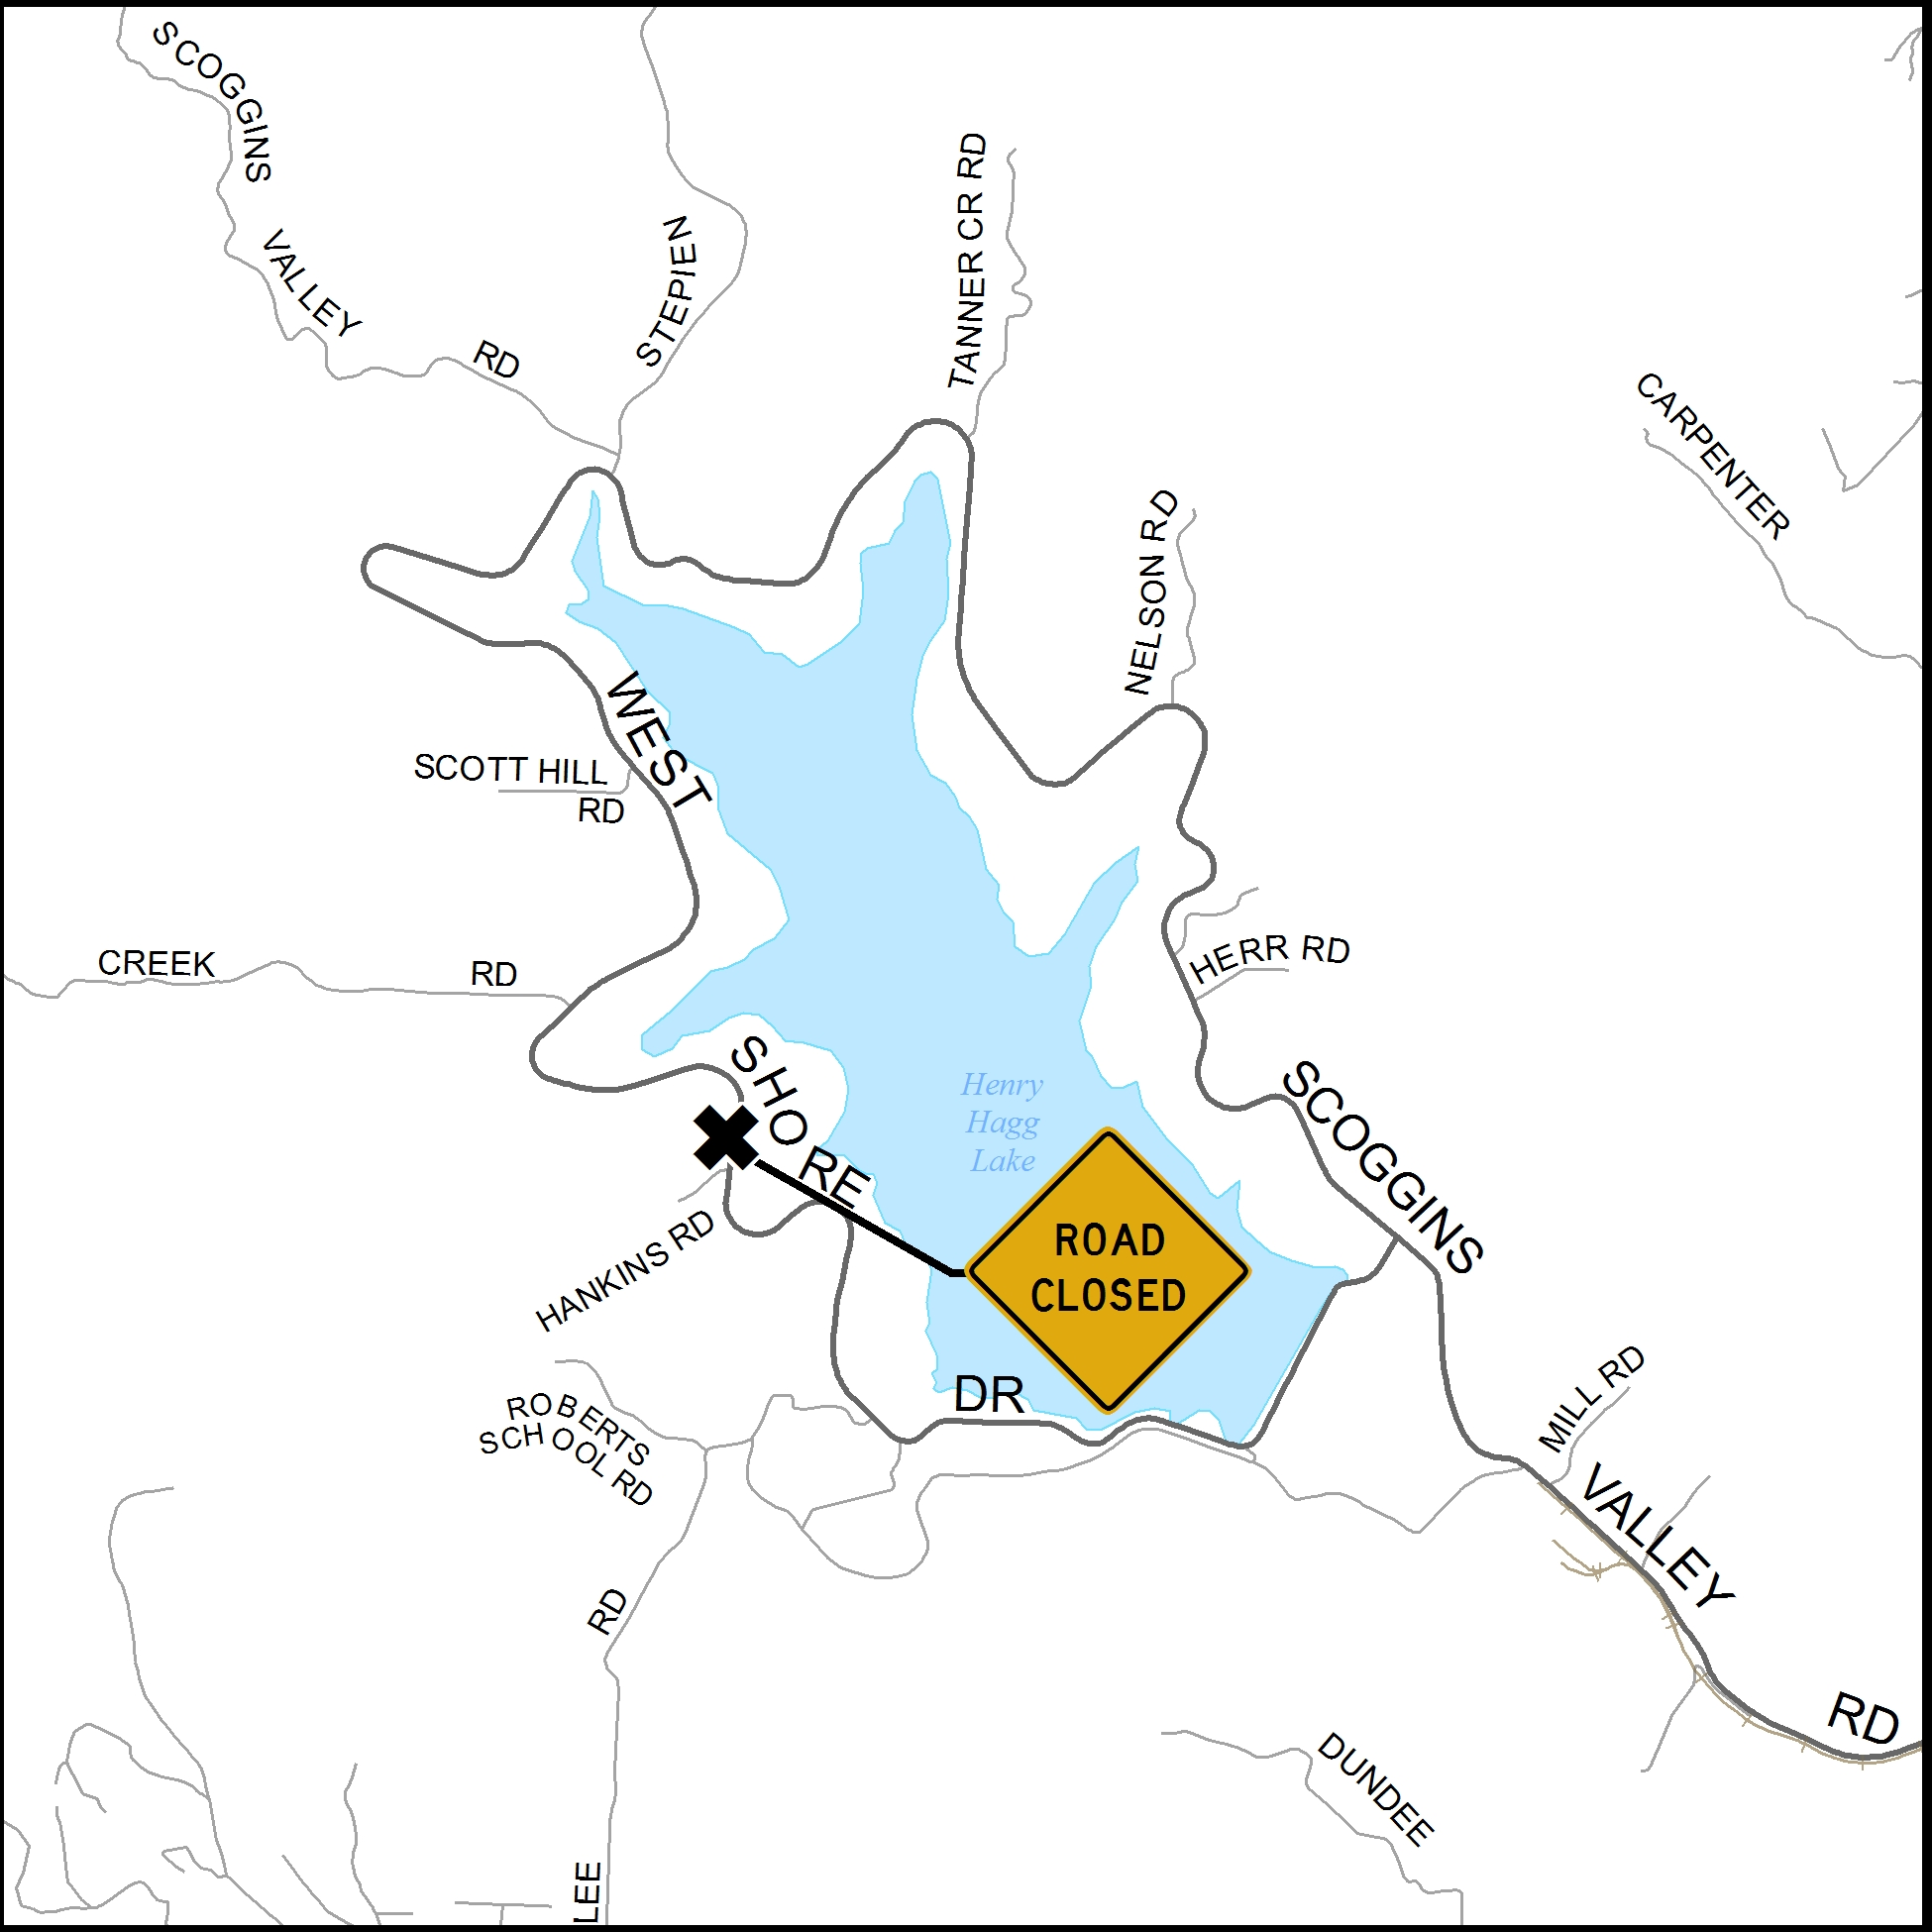 Hankins Slide closure map